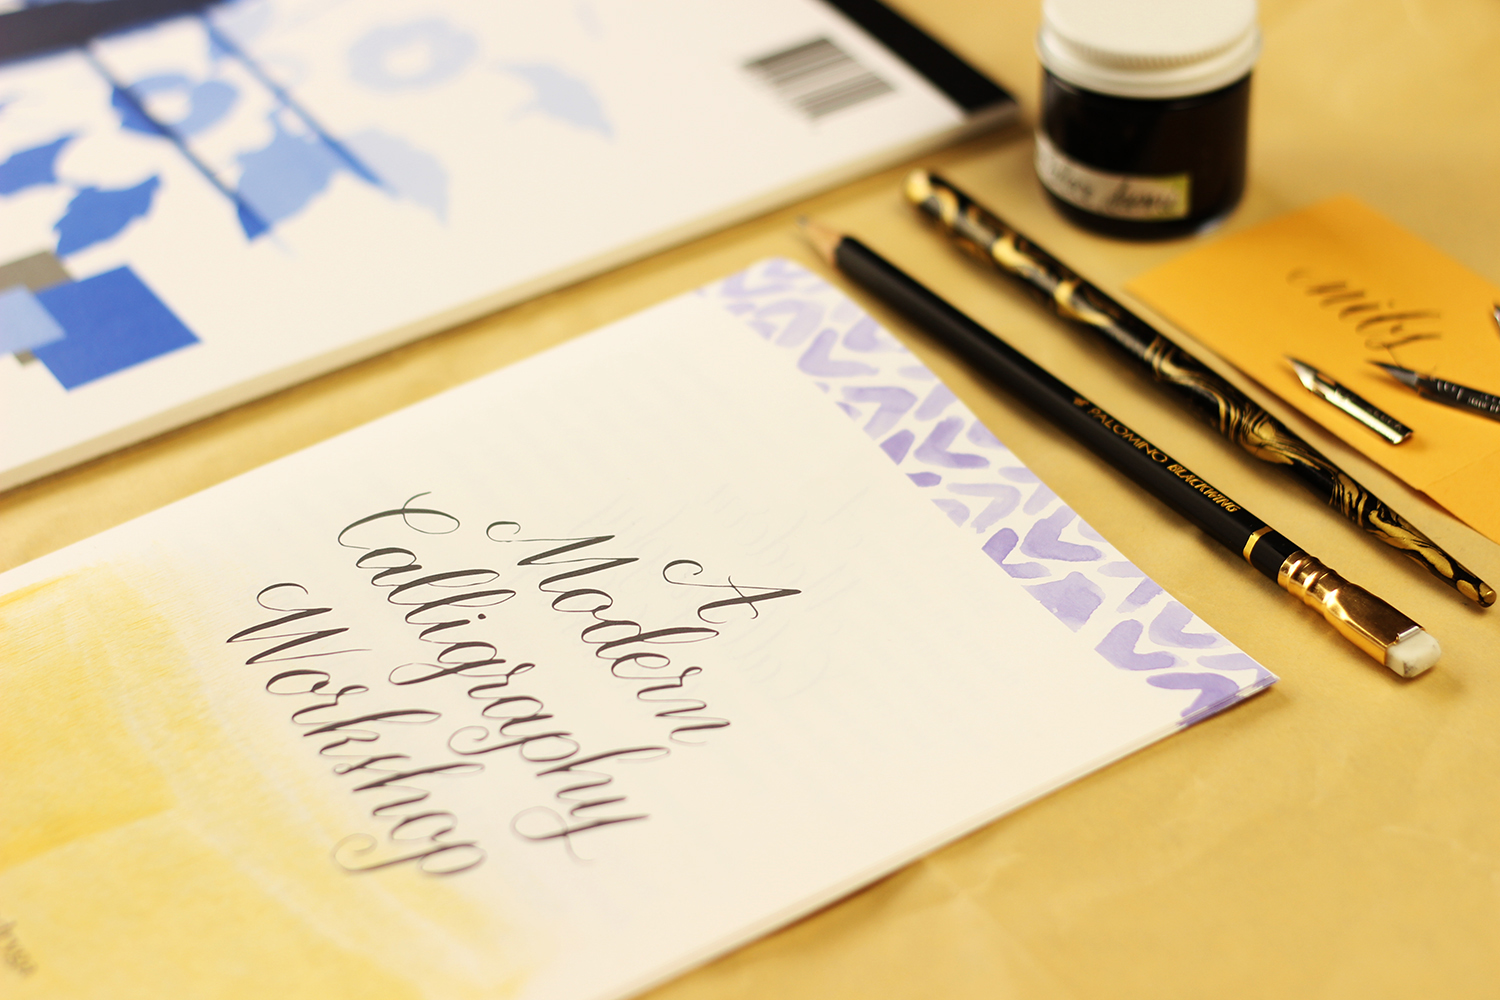 Modern Calligraphy Workshop by Daughter Zion Designs